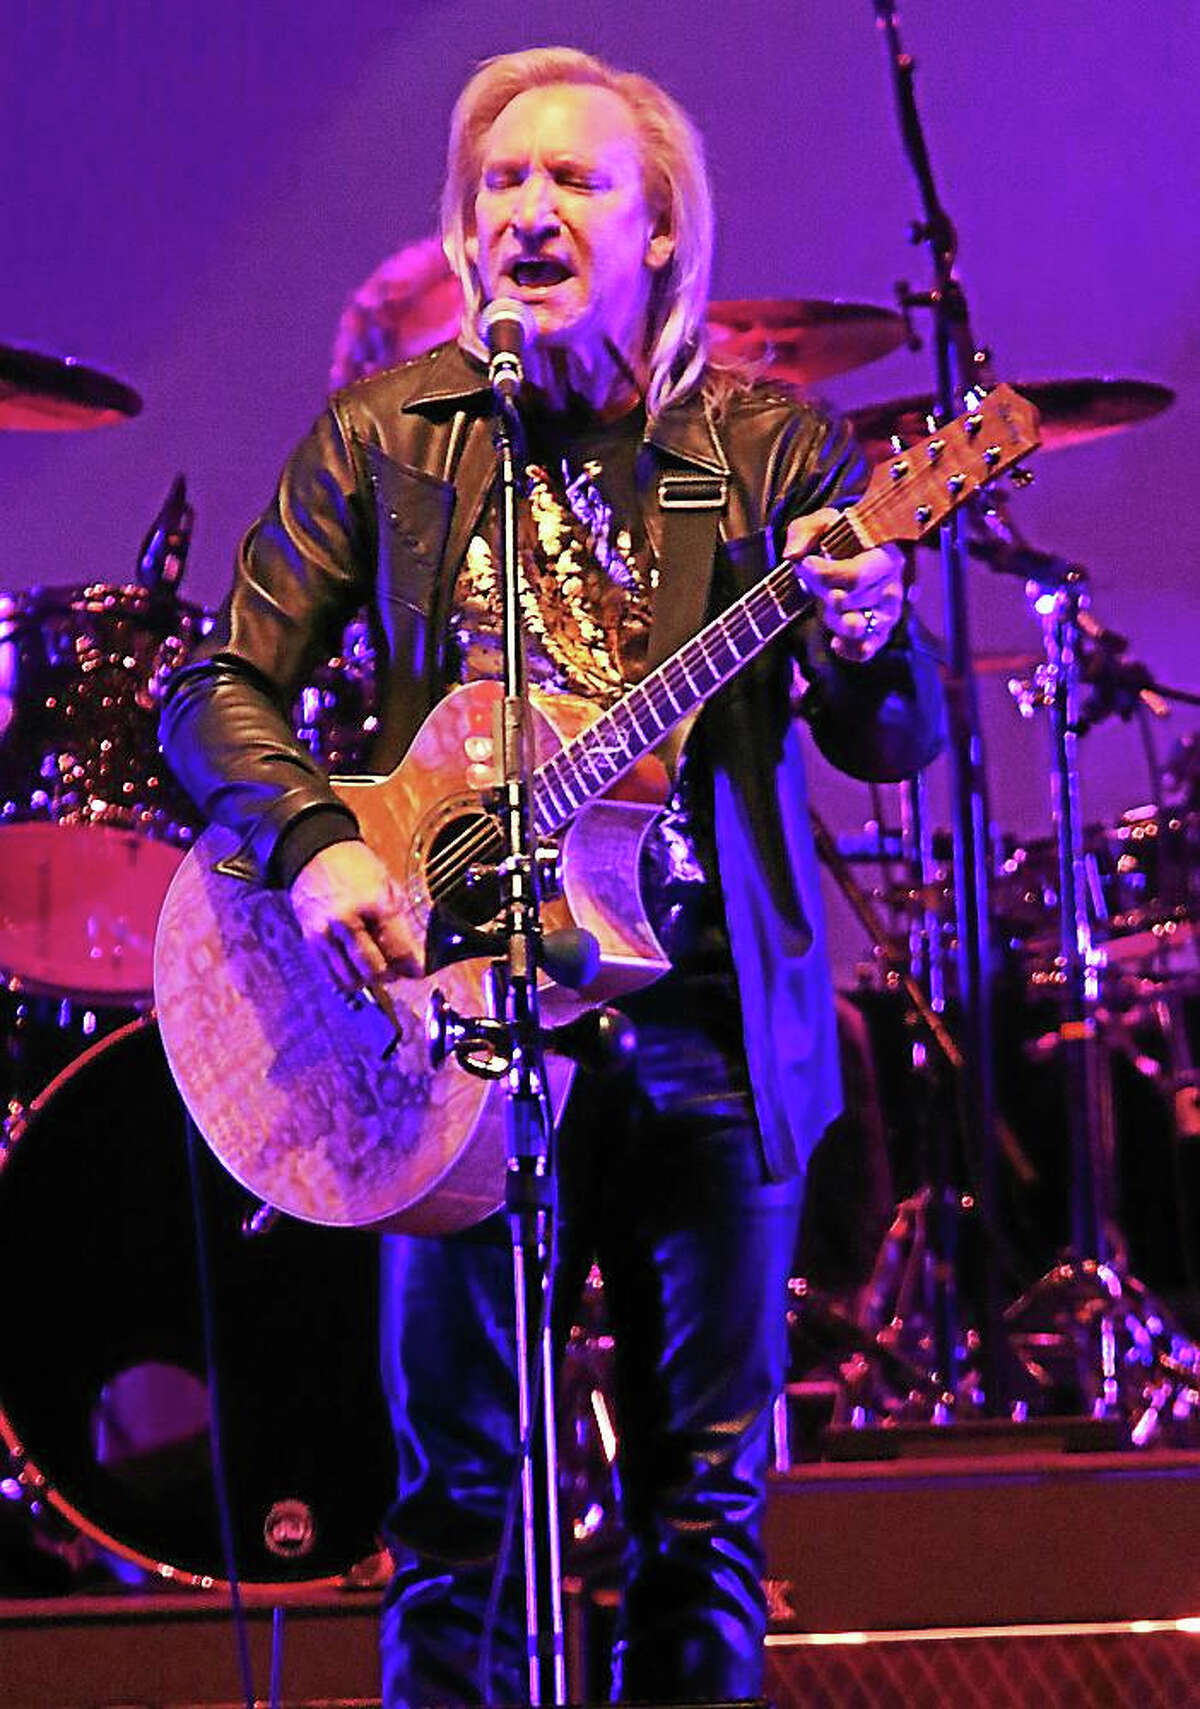 Photo by John Atashian Singer, songwriter and multi-instrumentalist Joe Walsh is shown performing to a full house of fans at the Mohegan Sun Arena in Uncasville Oct. 16. Joe played songs from his 40 year music career, which included material from The James Gang, The Eagles and his solo material.